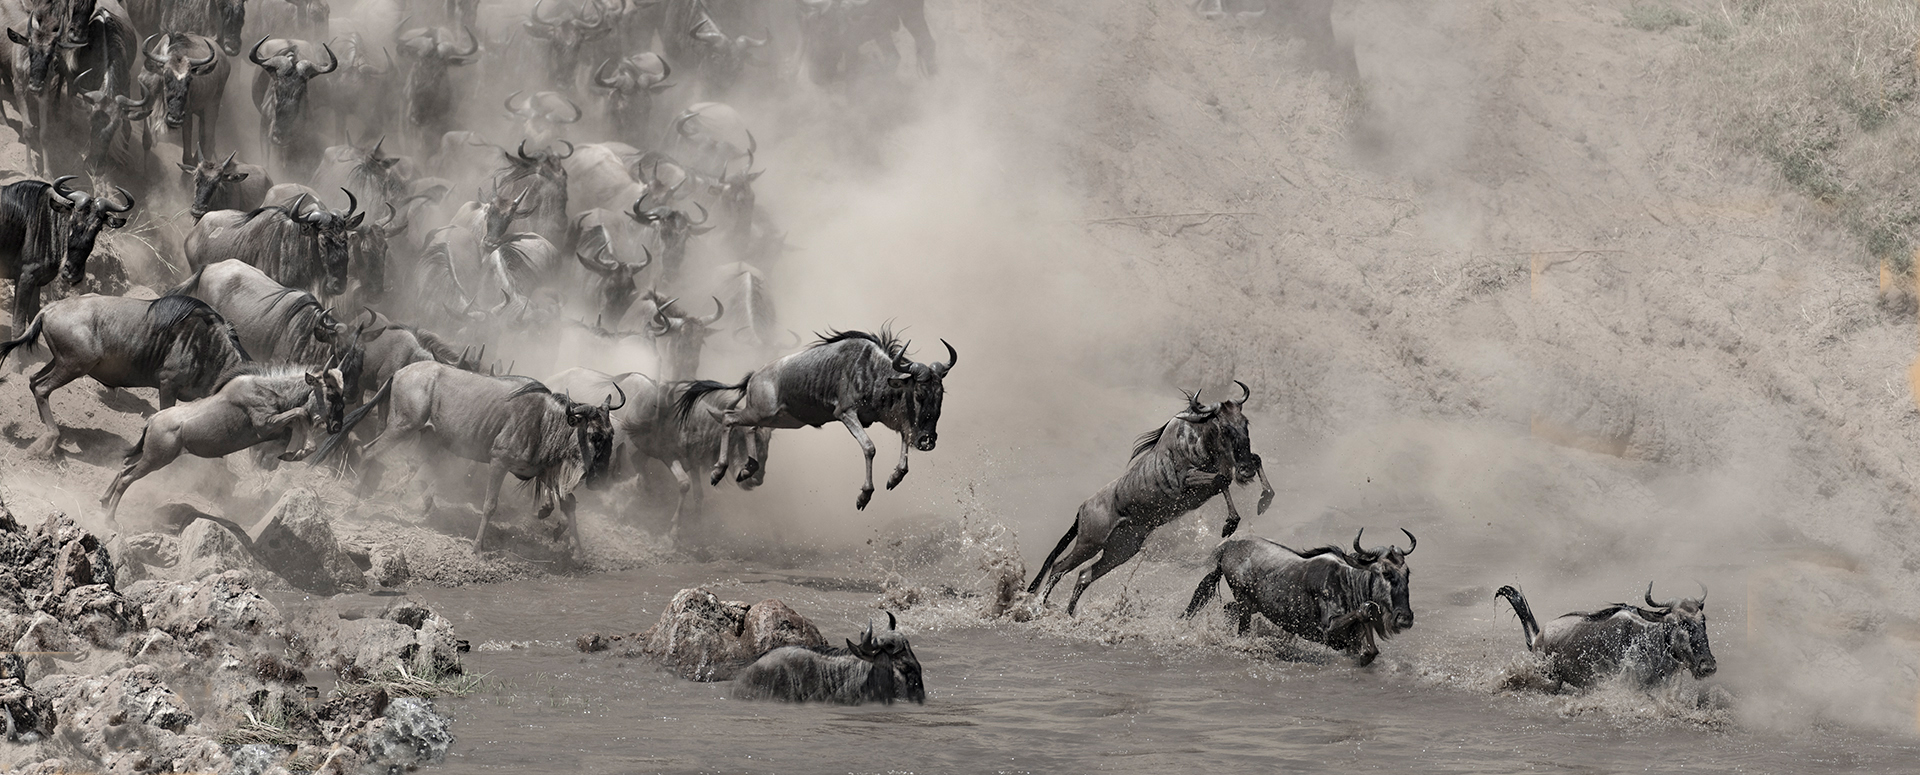 Wildebeest jump into the Mara river with the purpose to cross it to the other side. Image by Todd Gustafson.